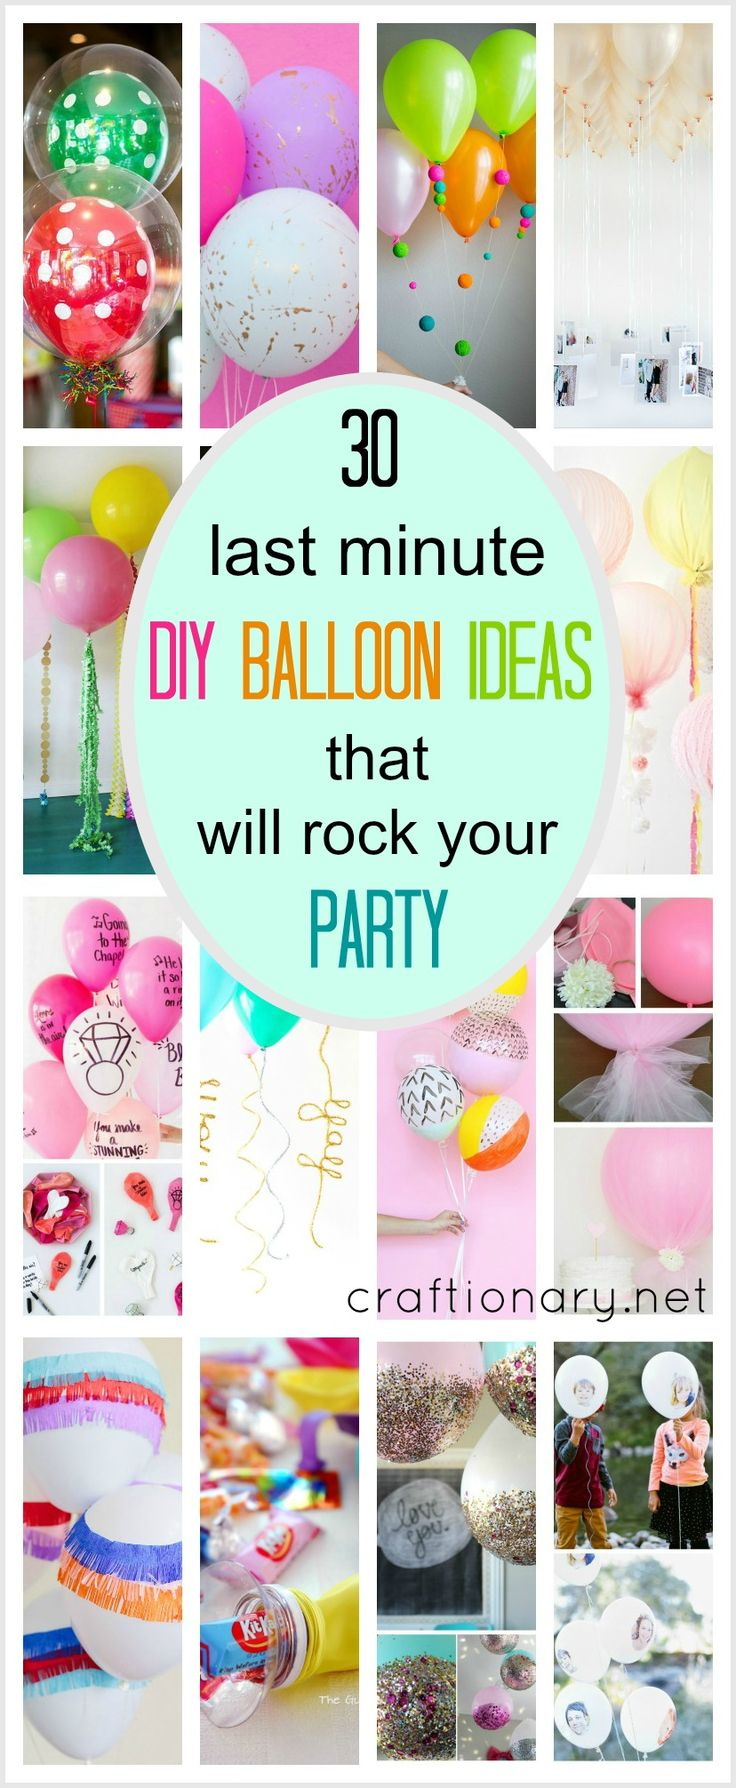 DIY balloon ideas for every party